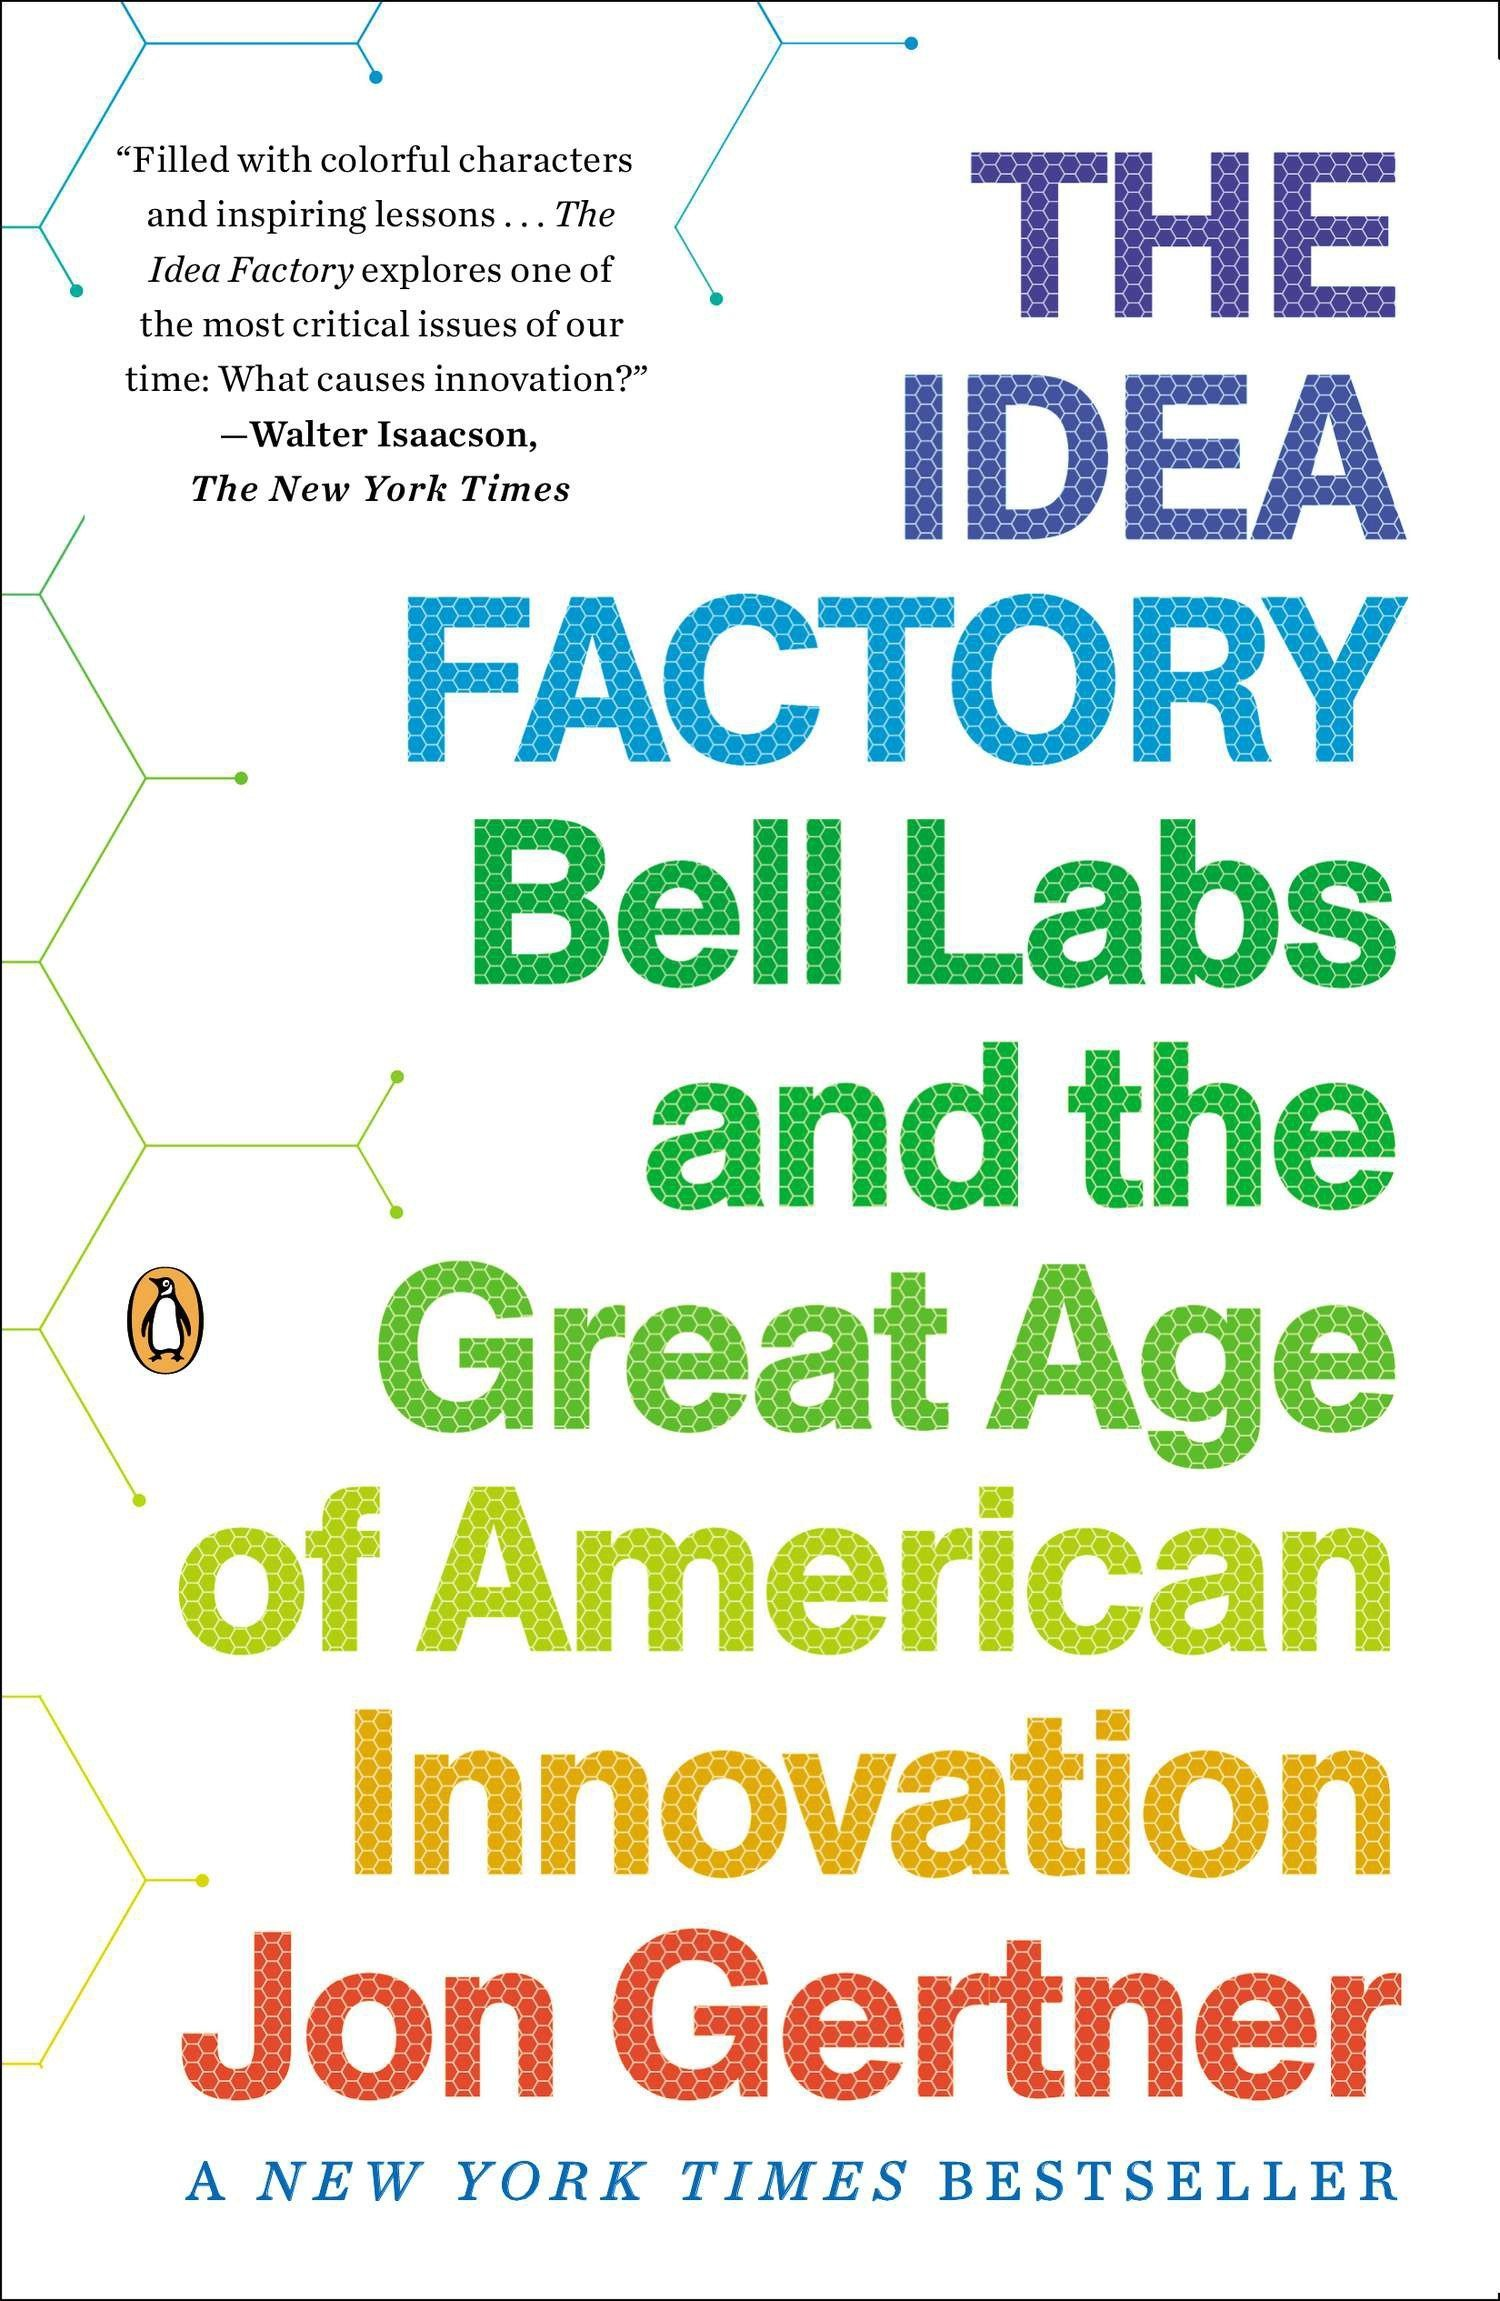 Book Cover of The Idea Factory